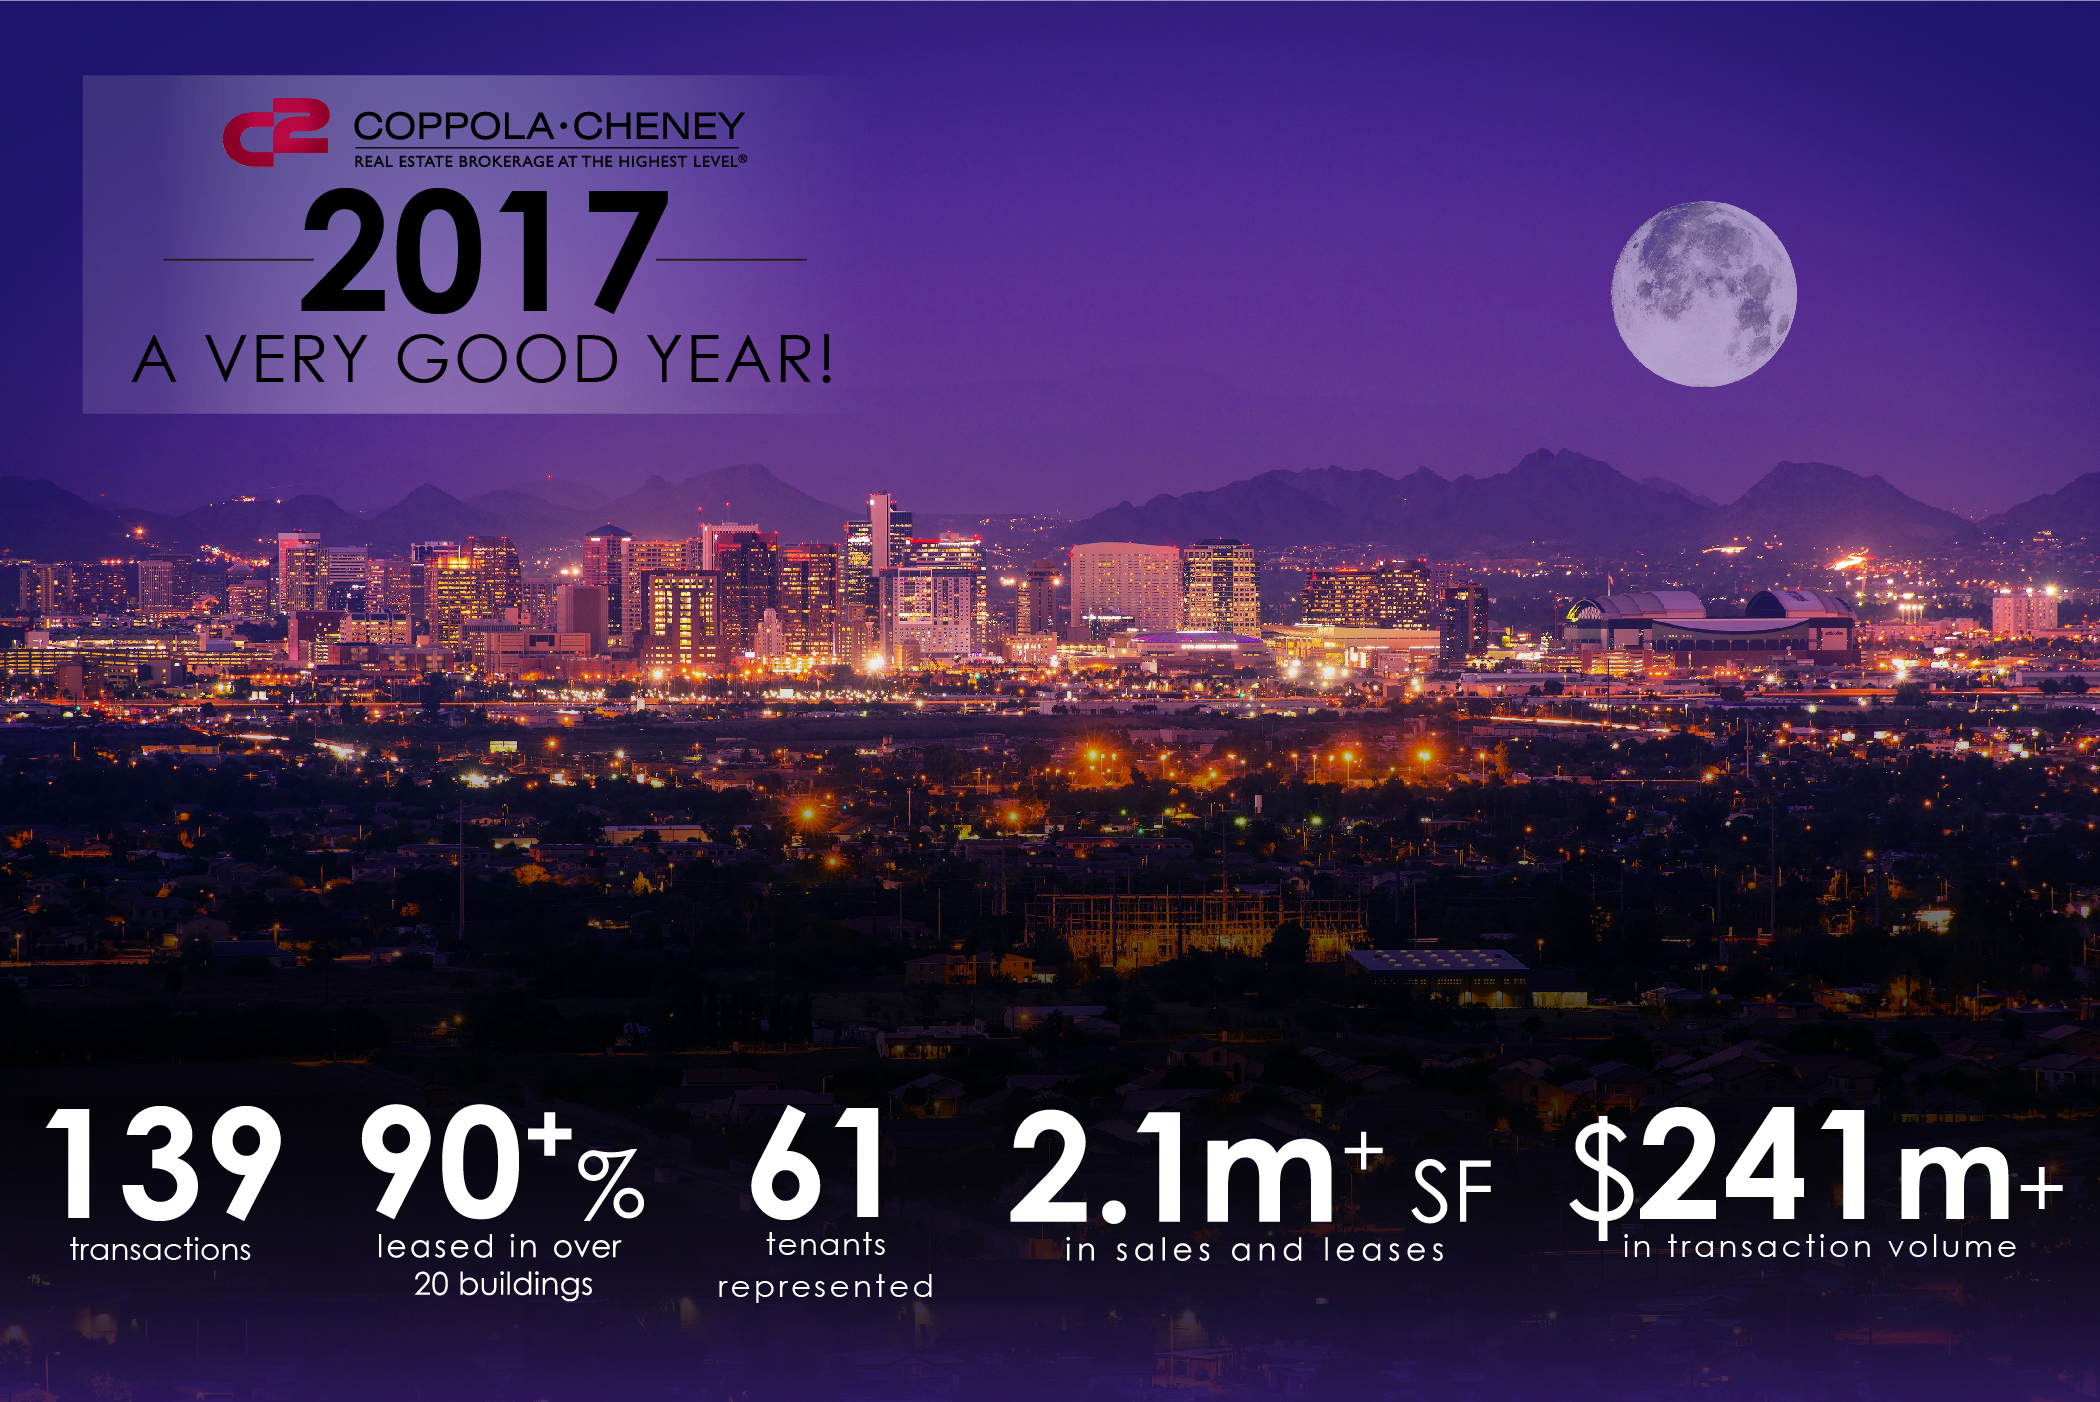 2017 By the Numbers